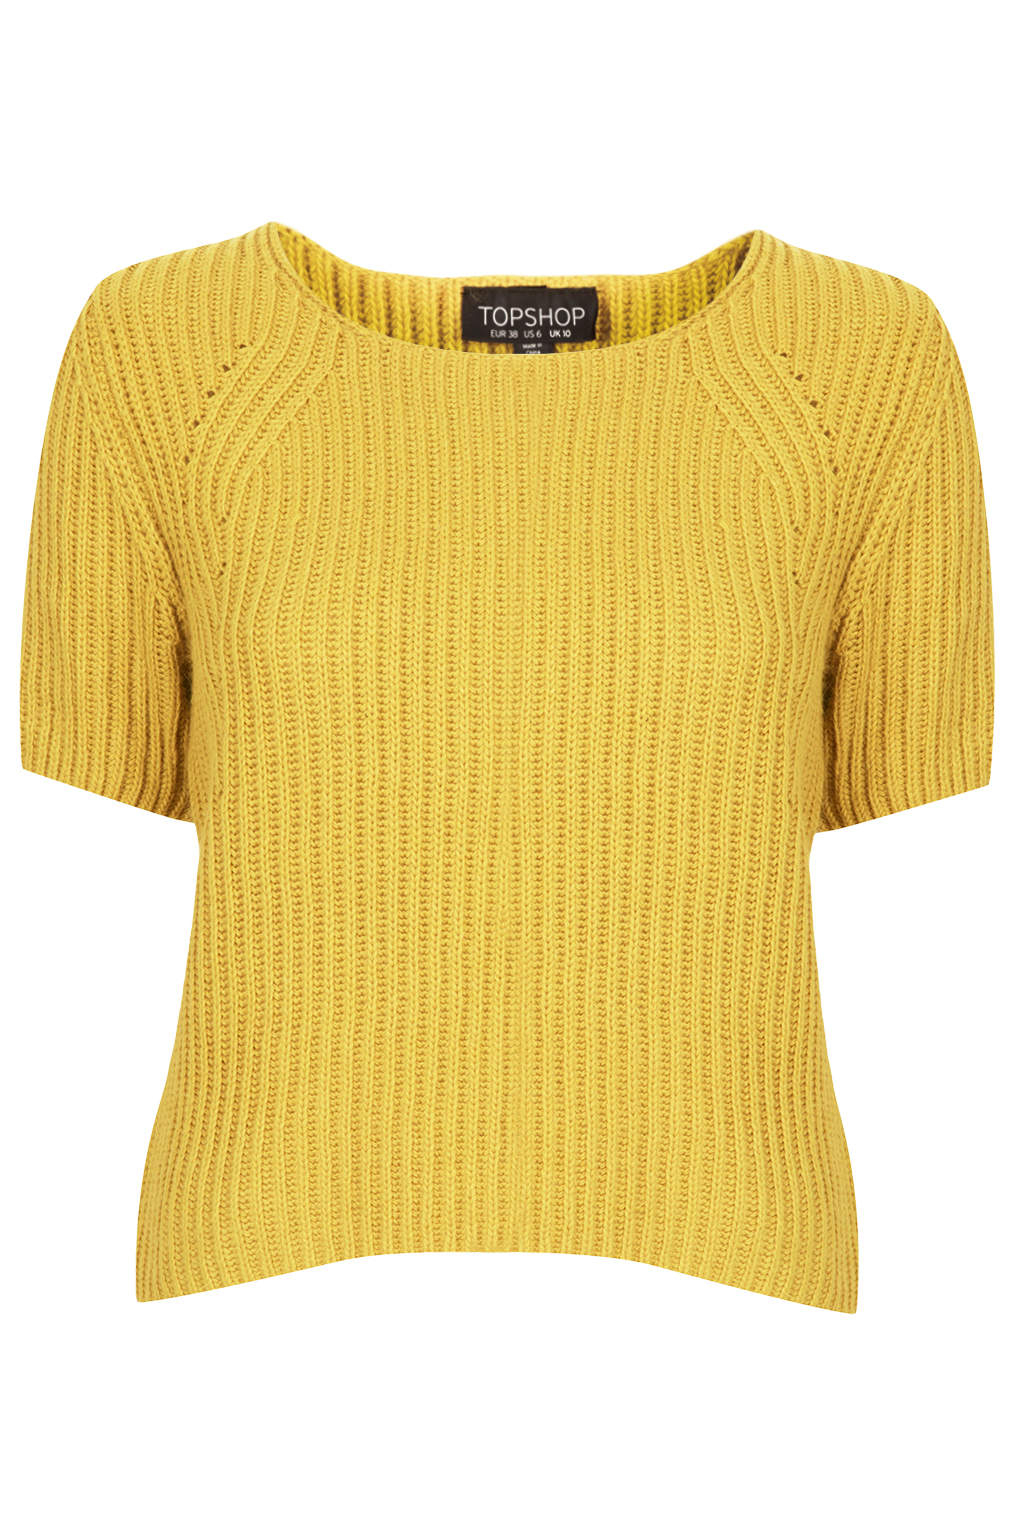 Lyst Topshop Knitted Short Sleeve Rib Top In Yellow